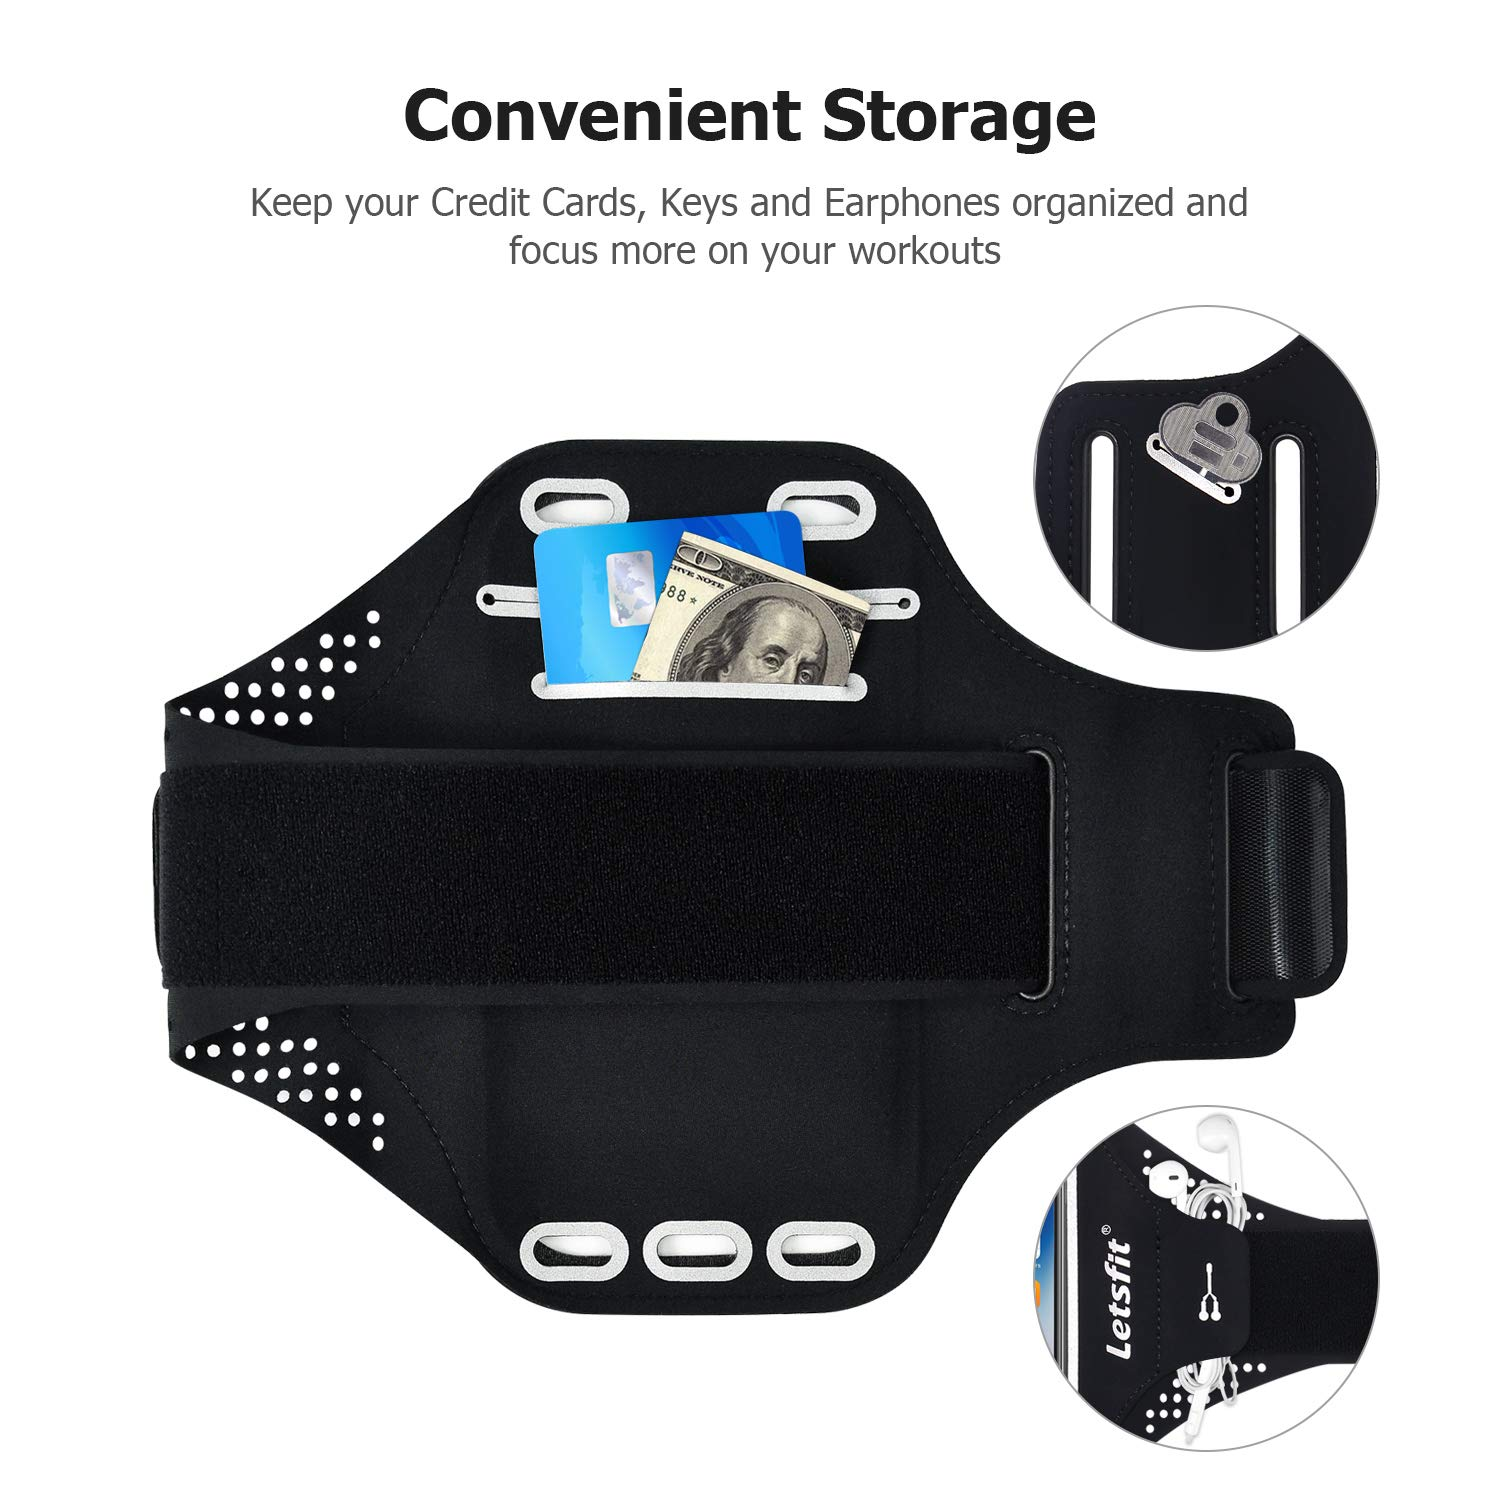 Letsfit Running Armband, Water Resistant Cell Phone Armband for iPhone Xs MAX XR 8 7 6s Plus Galaxy S10 S9 S8 S7 with Key Slot, Headphone Slot and Face ID for Running, Walking, Hiking, Black